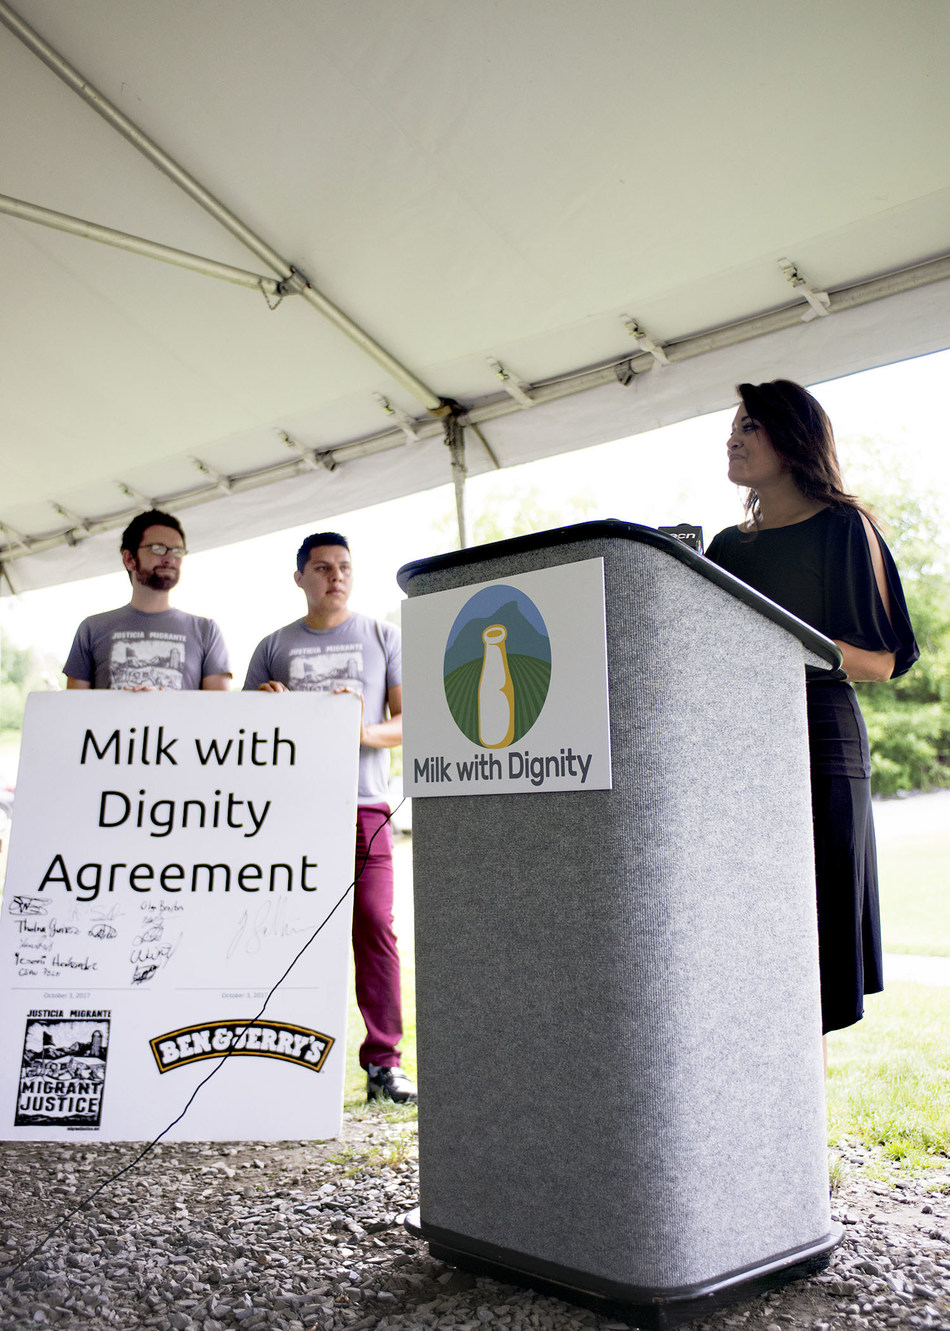 BEN & JERRY'S AND MIGRANT JUSTICE JOINTLY ANNOUNCE GROUNDBREAKING SUCCESS